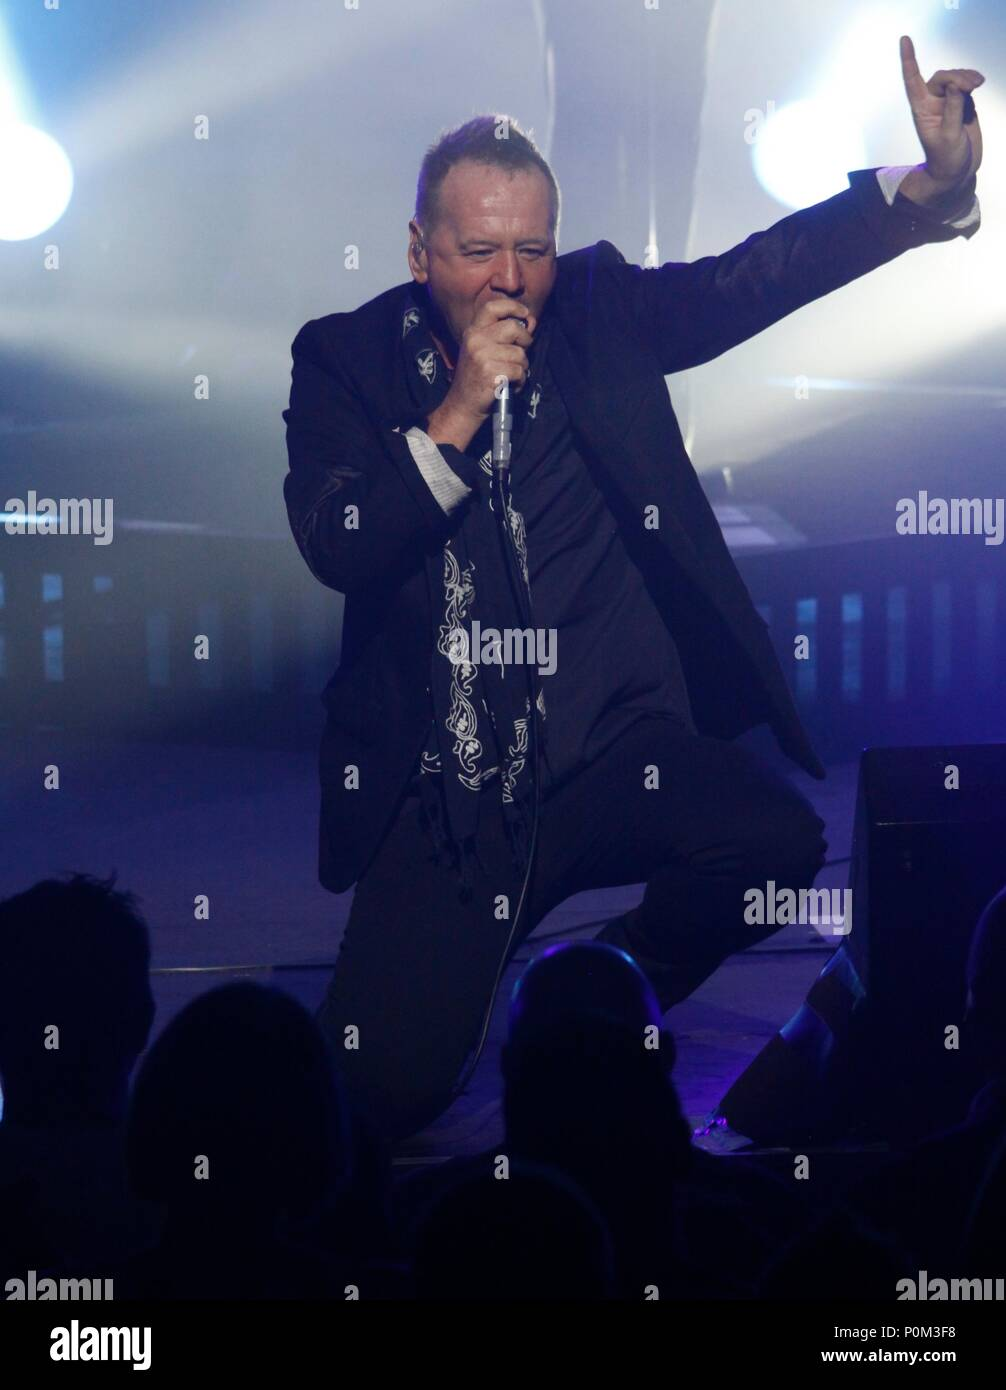 Liverpool, Uk, simple minds perform at Liverpool Empire theatre credit Ian Fairbrother/Alamy Stock Photos - Stock Image